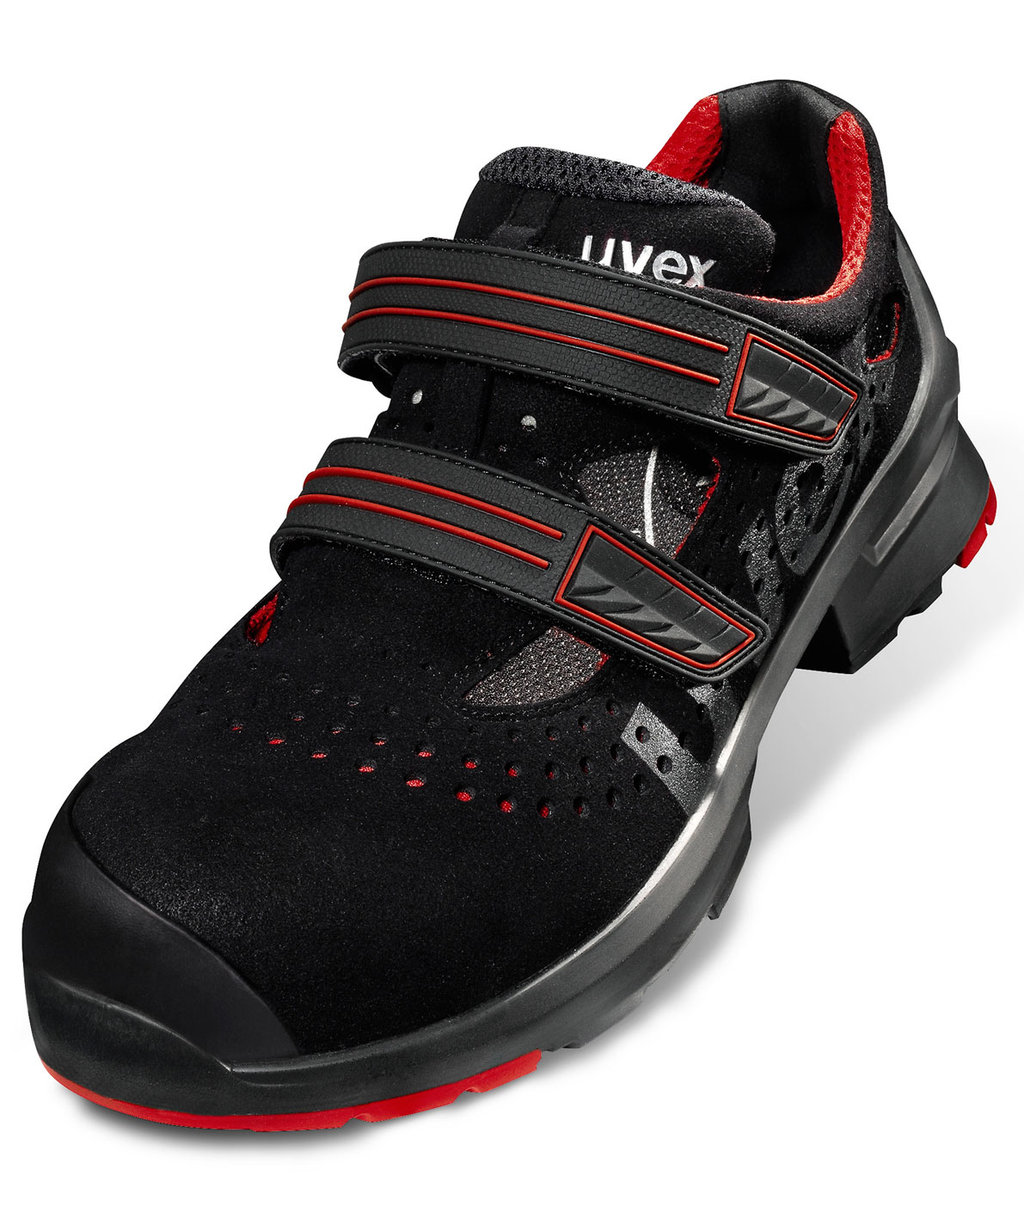 Uvex 1 8536 ESD safety sandals S1P, Black/Red